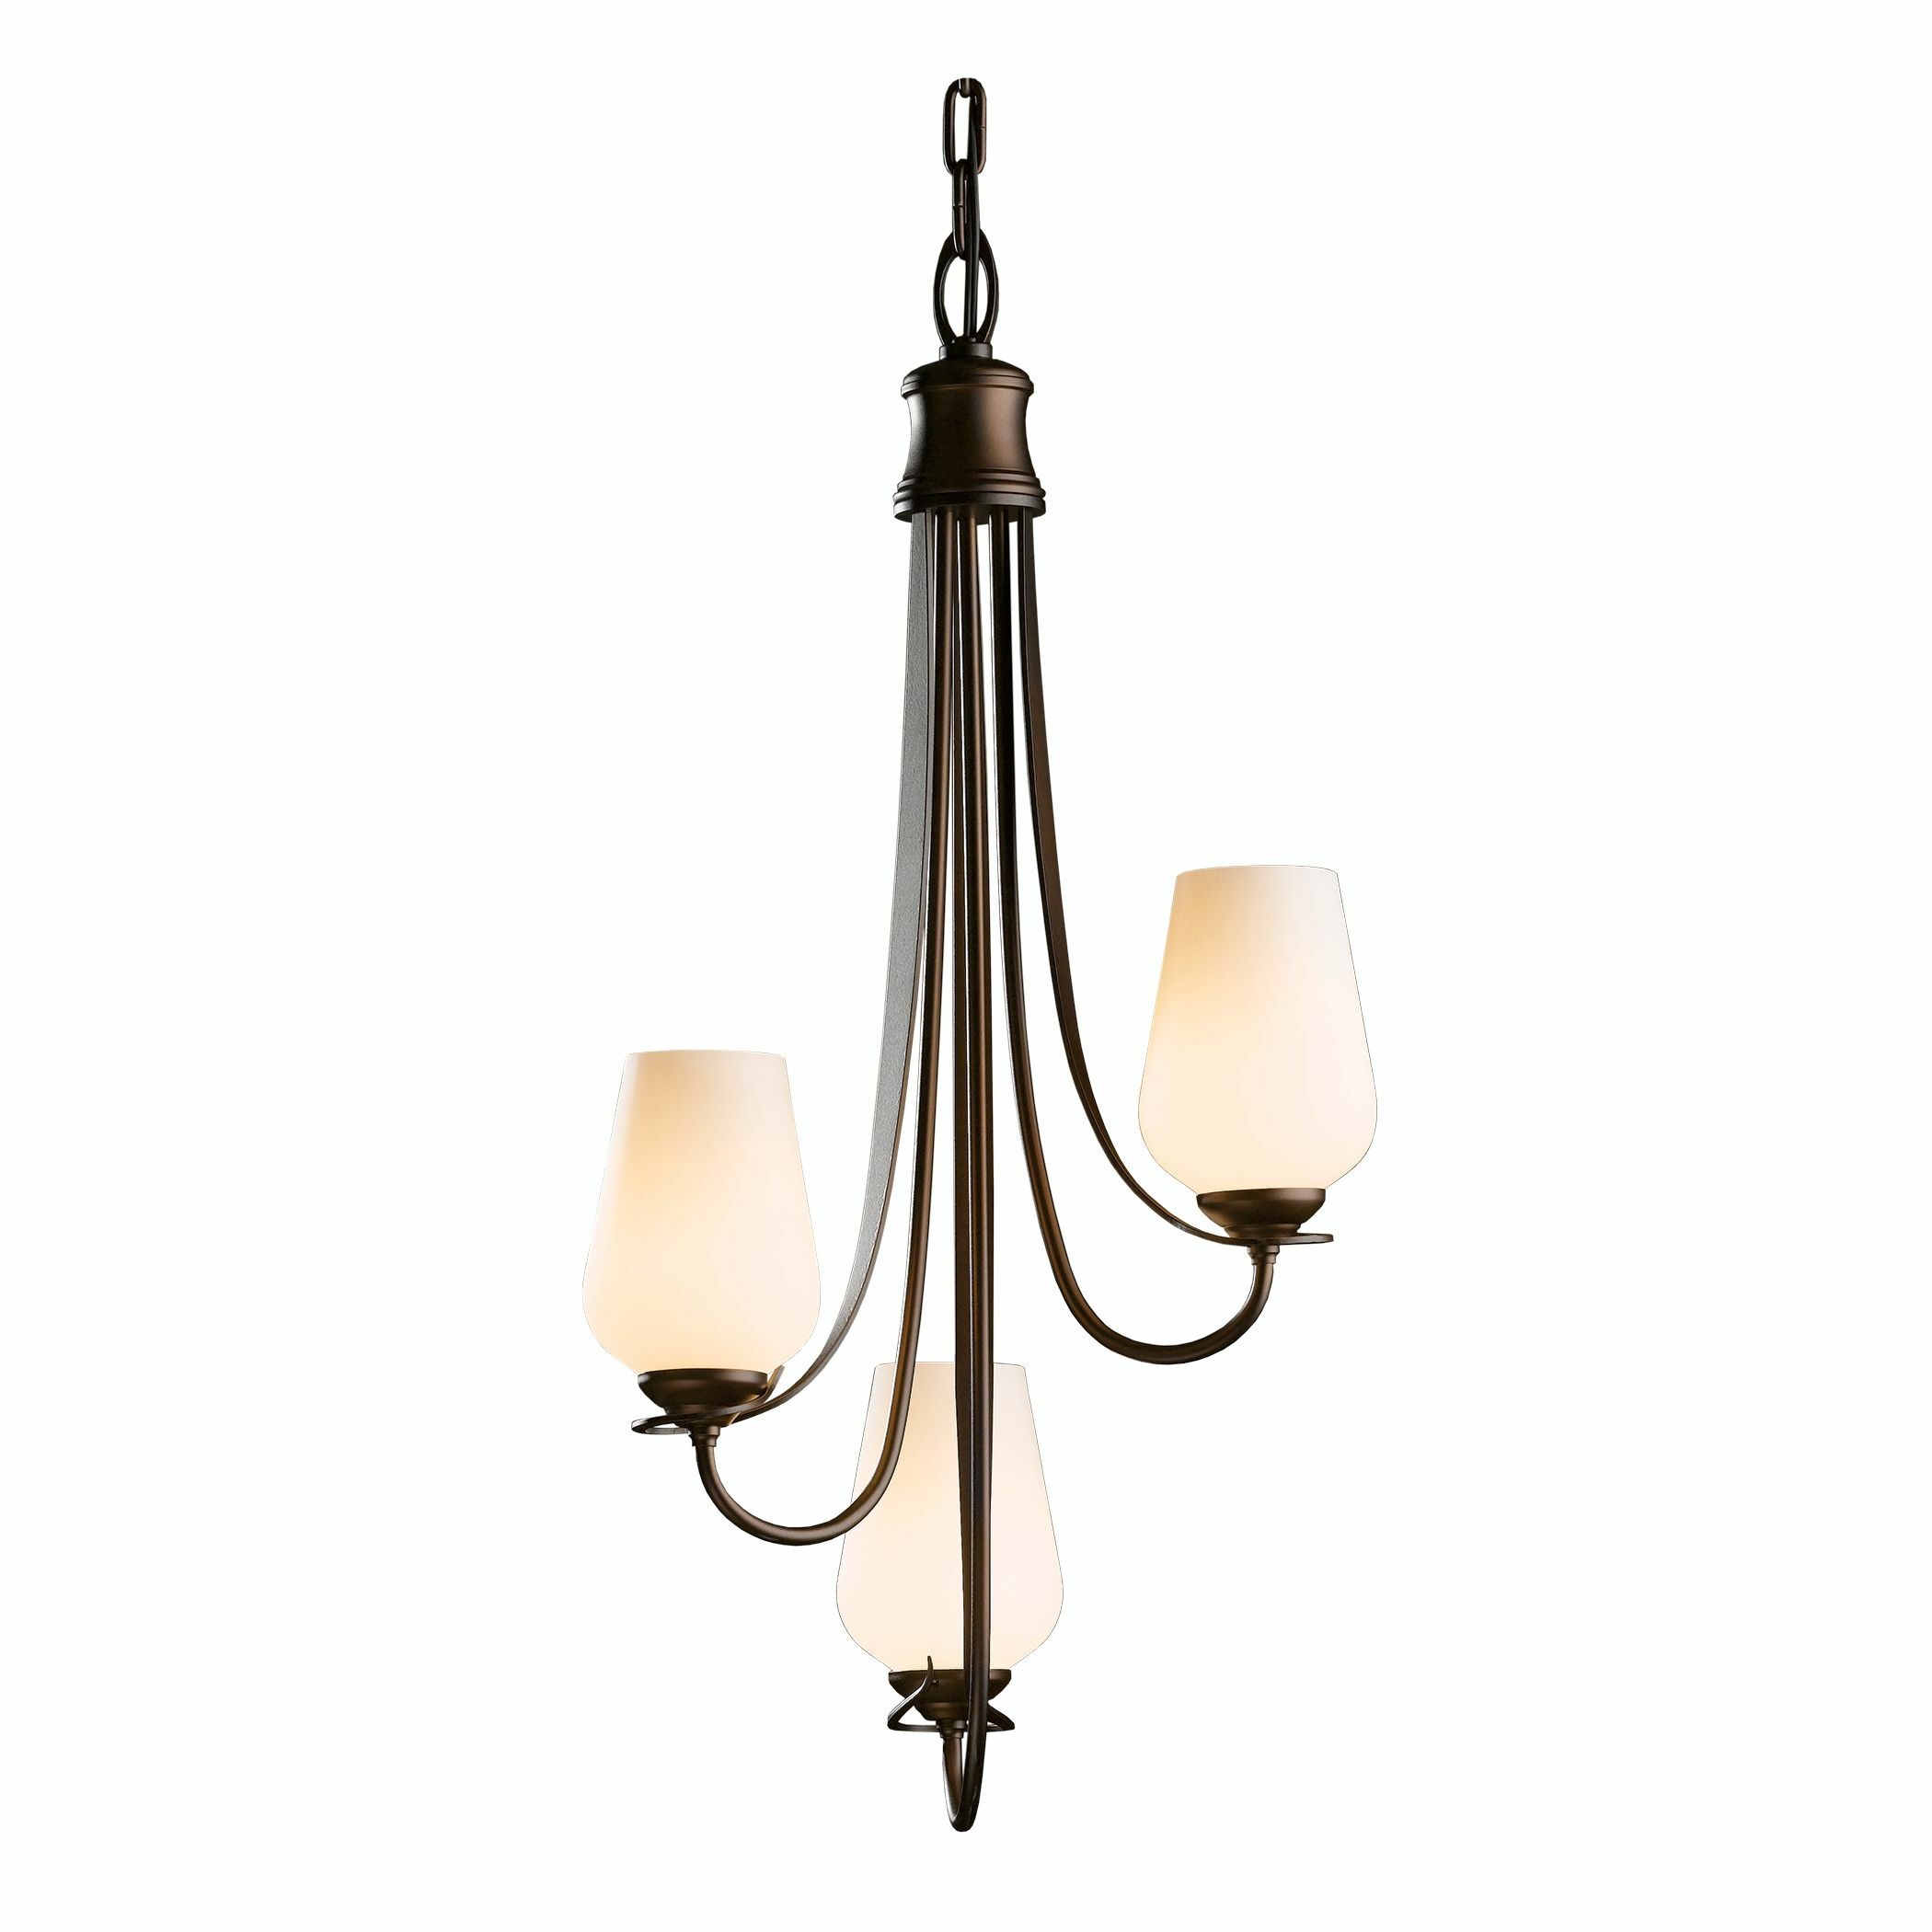 Flora 3-Light Shaded Chandelier Finish: Natural lron, Shade Color: Stone